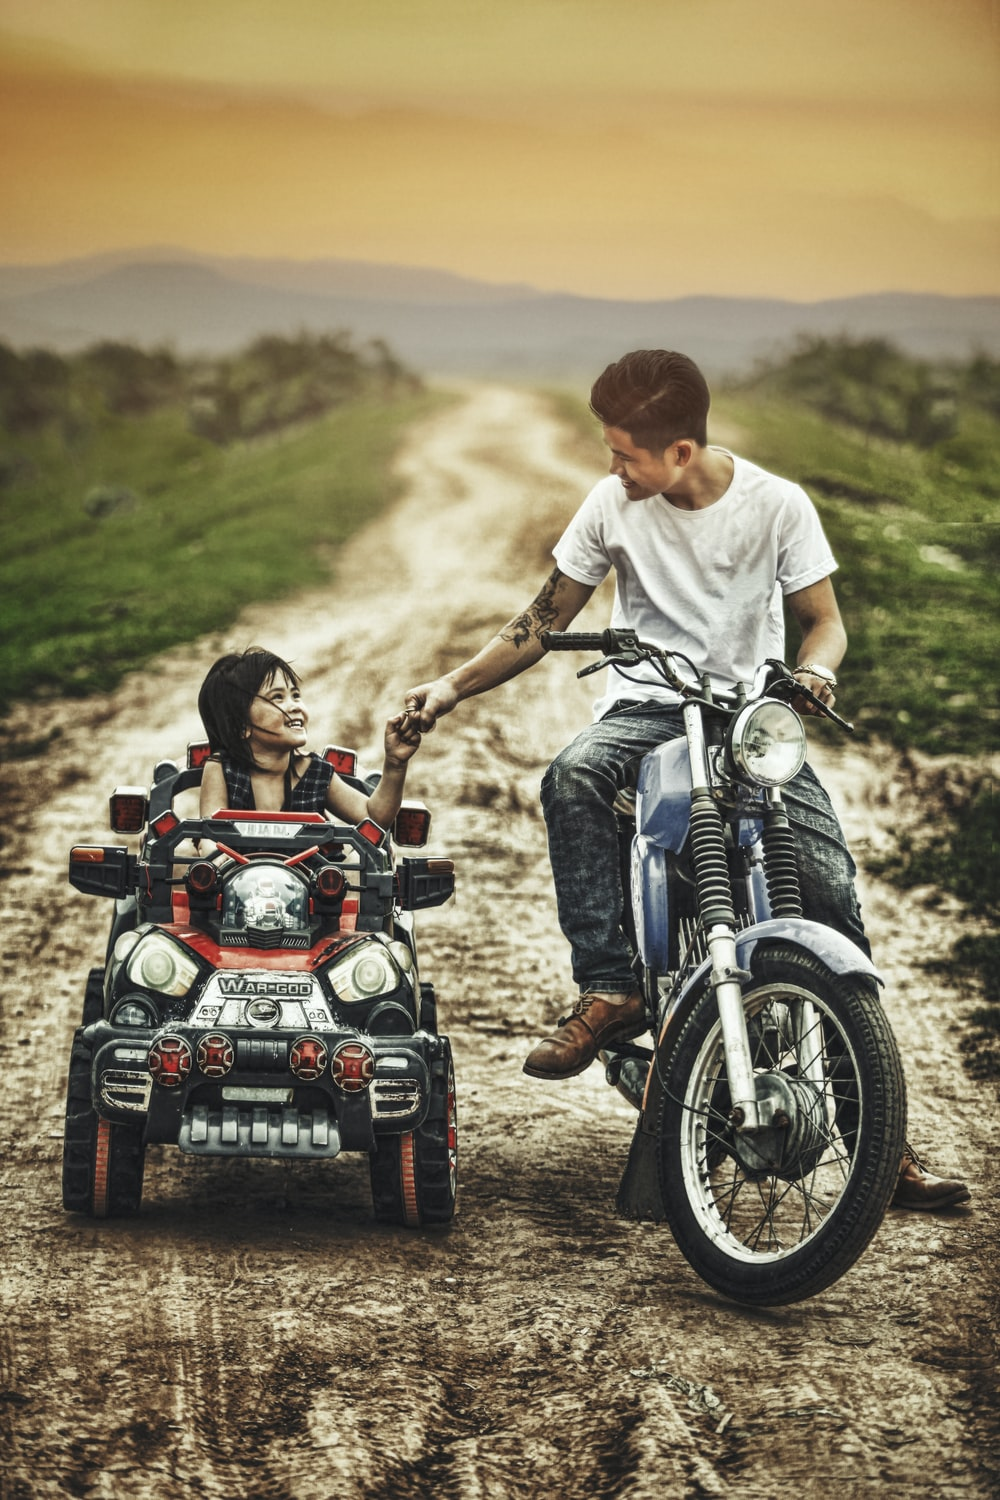 man riding motorcycle and toddler on a toy car in a road during daytime